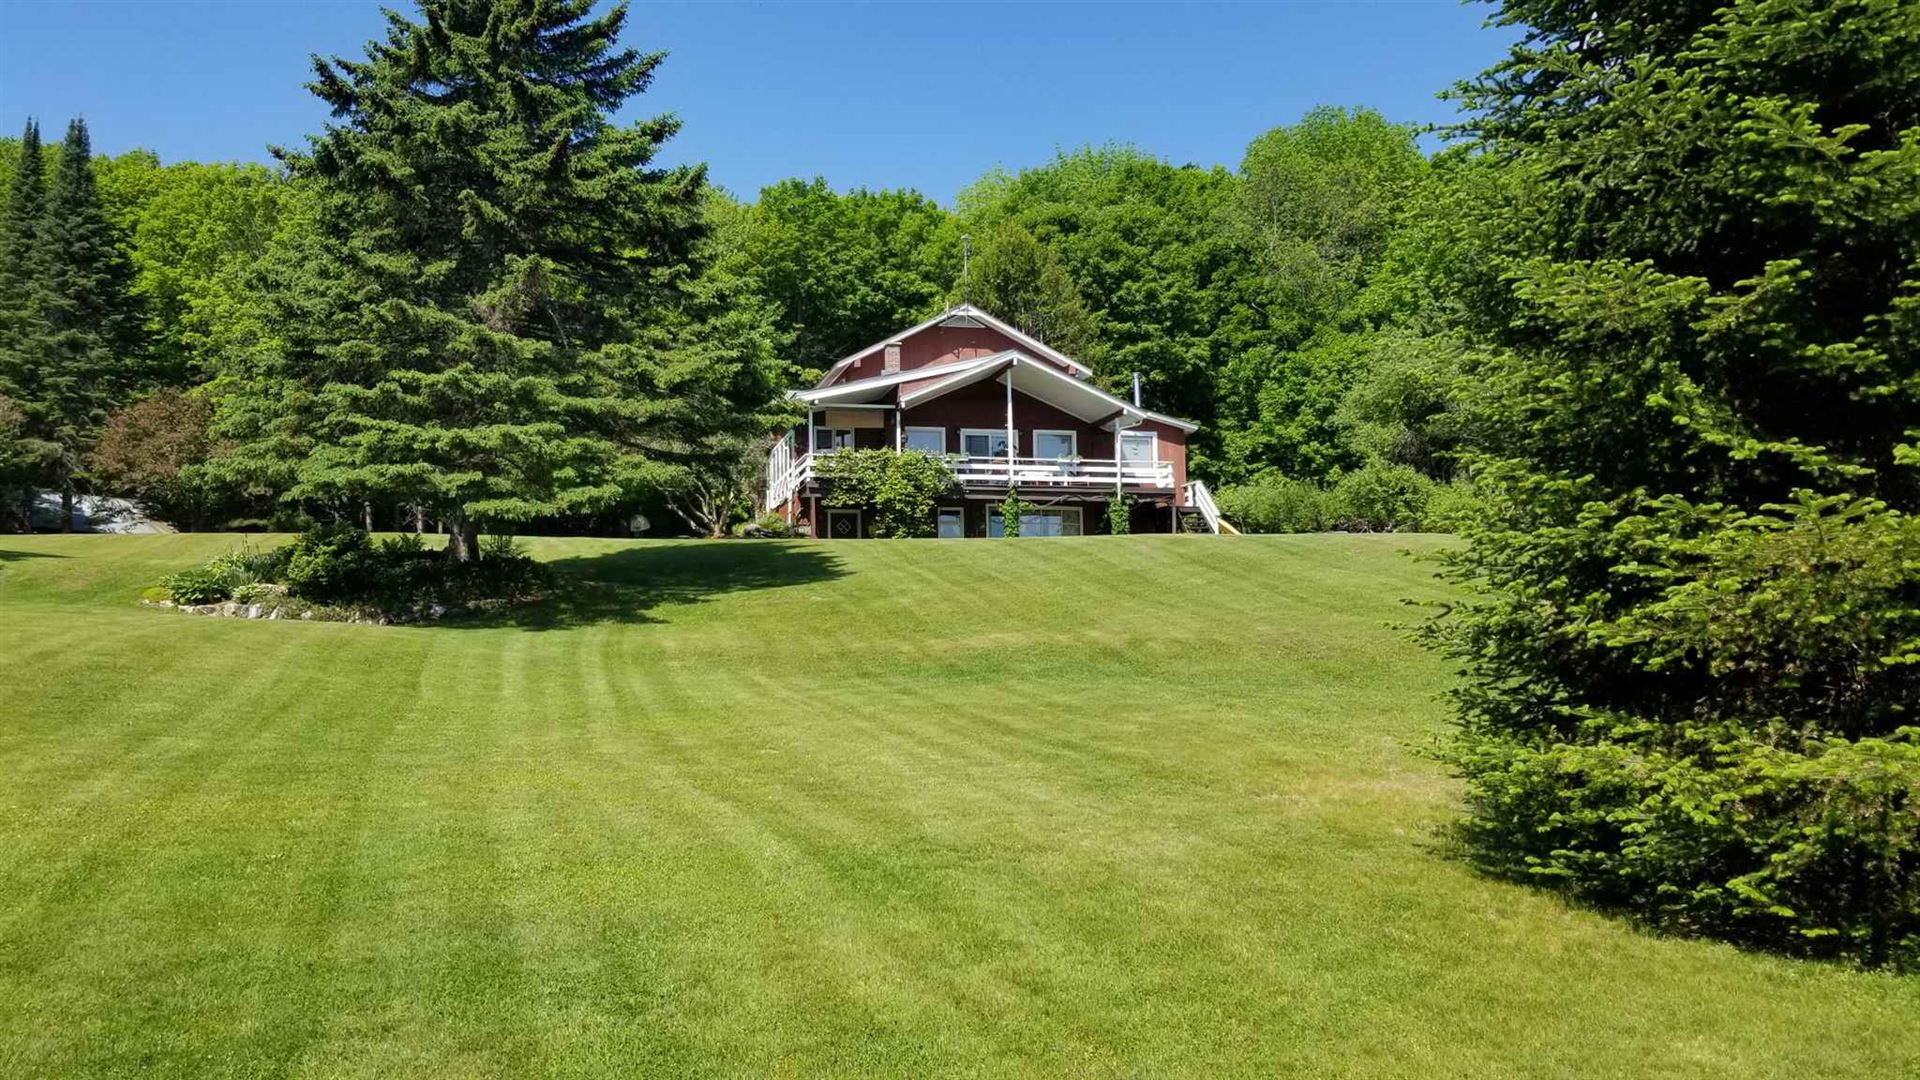 140 Stage Extension, Brookfield, VT 05036 - MLS#: 4810874